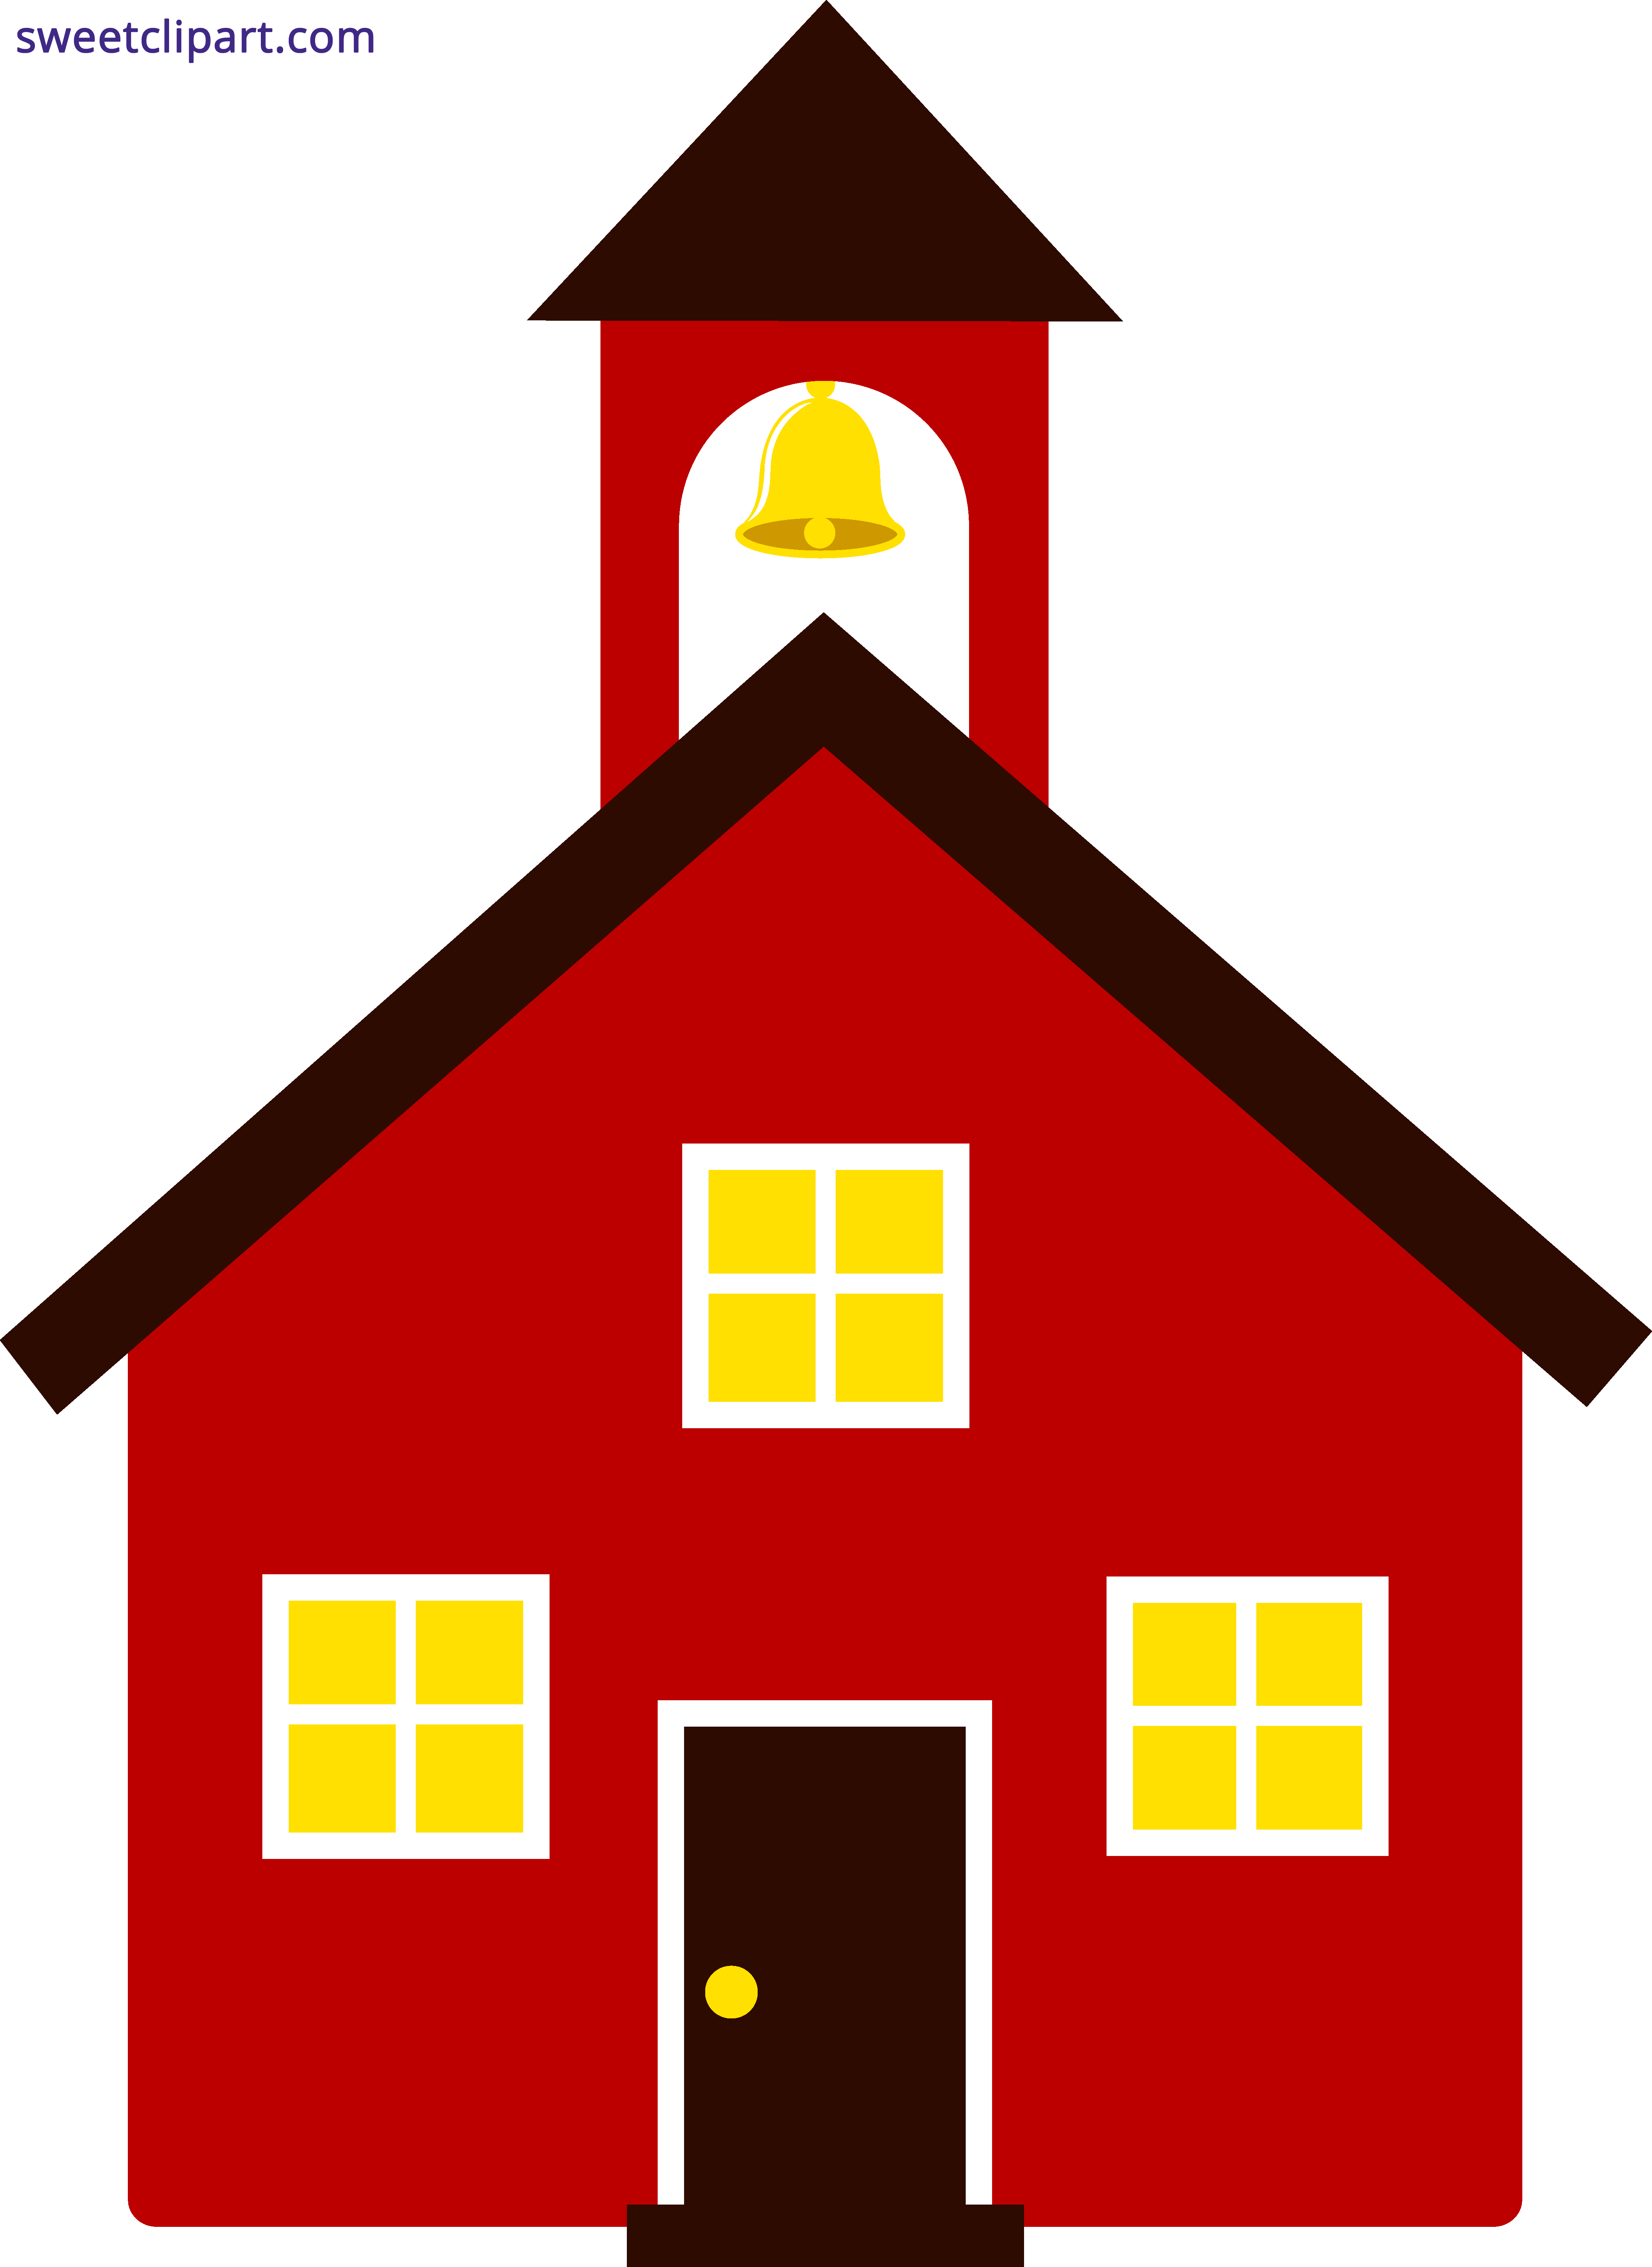 School house red sweet. Clipart home property